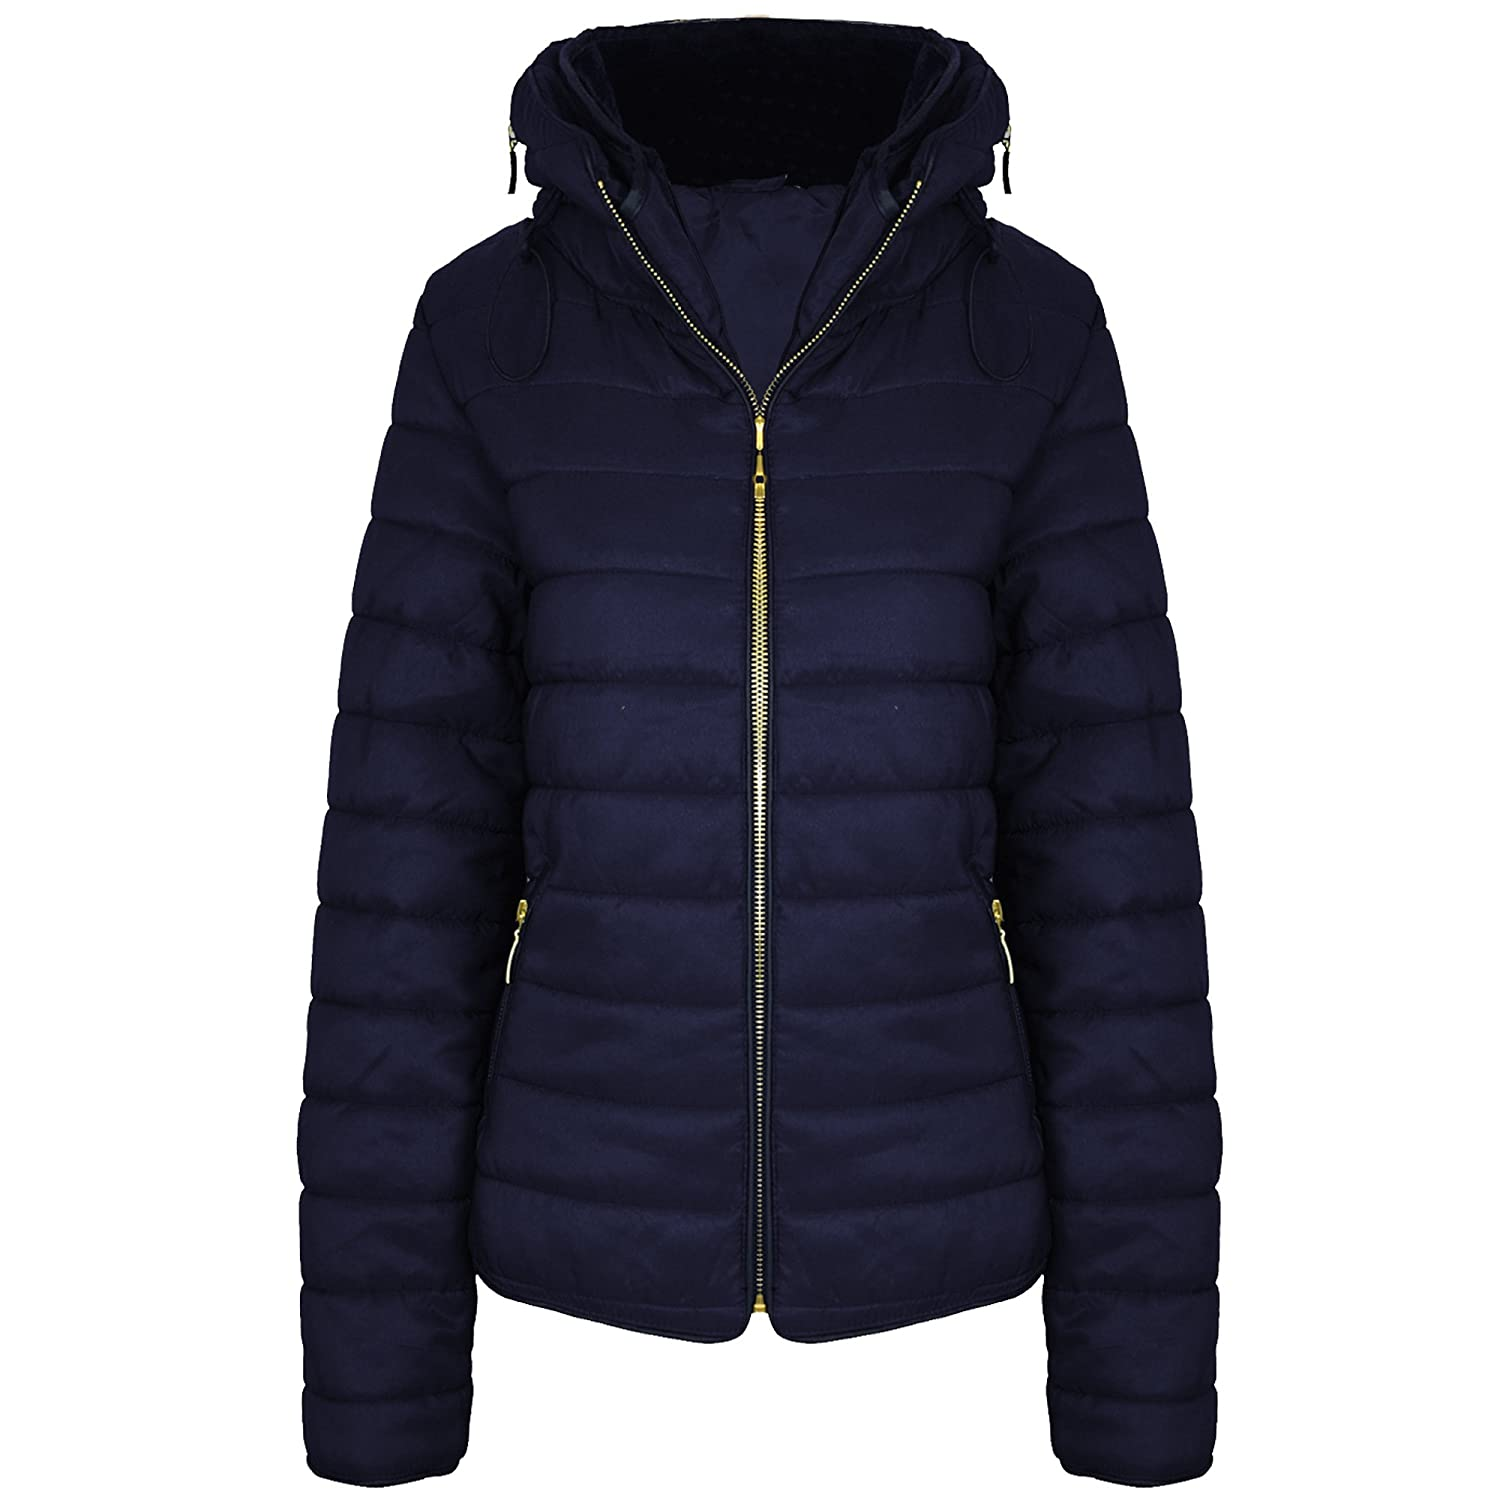 fa0750bbdc4 New New Ladies Womens Quilted Padded Puffer Bubble Fur Collar Warm Thick  Jacket Coat Top UK Size 8-14 (UK SIZE M/10, NAVY): Amazon.co.uk: Clothing